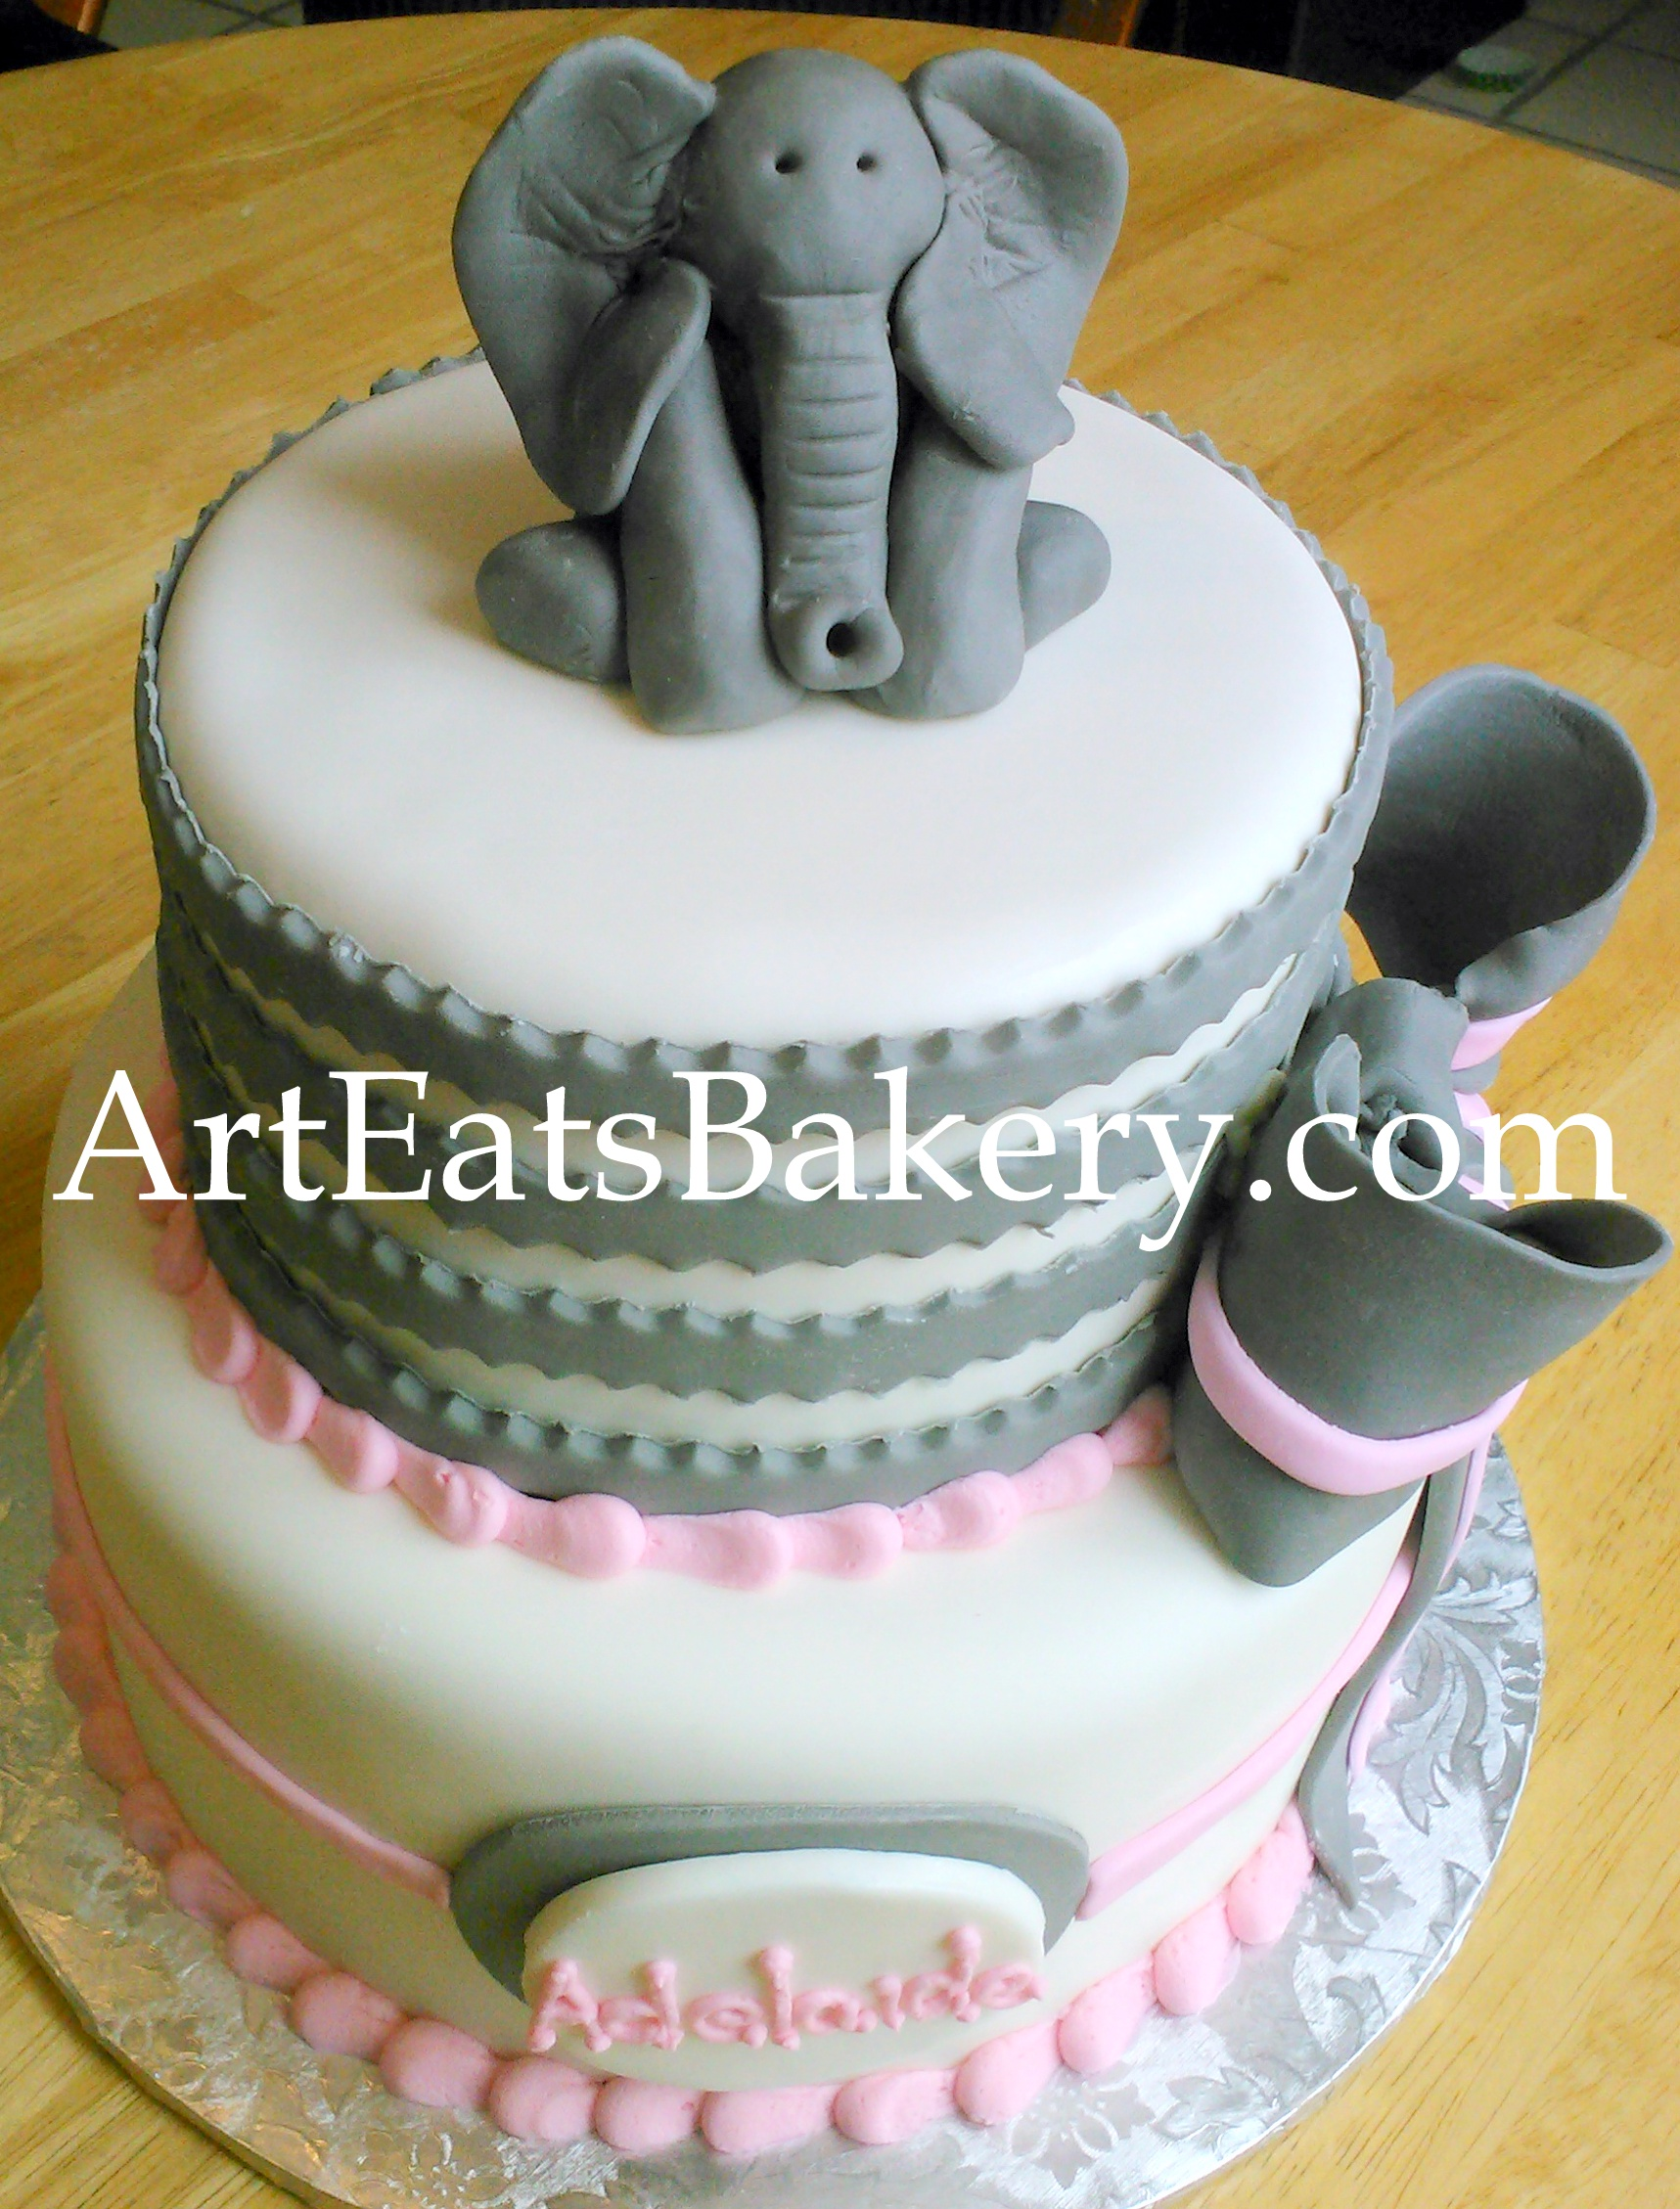 Pink and gray girl's baby shower cake design with bow and edible 3D elephant topper.jpg